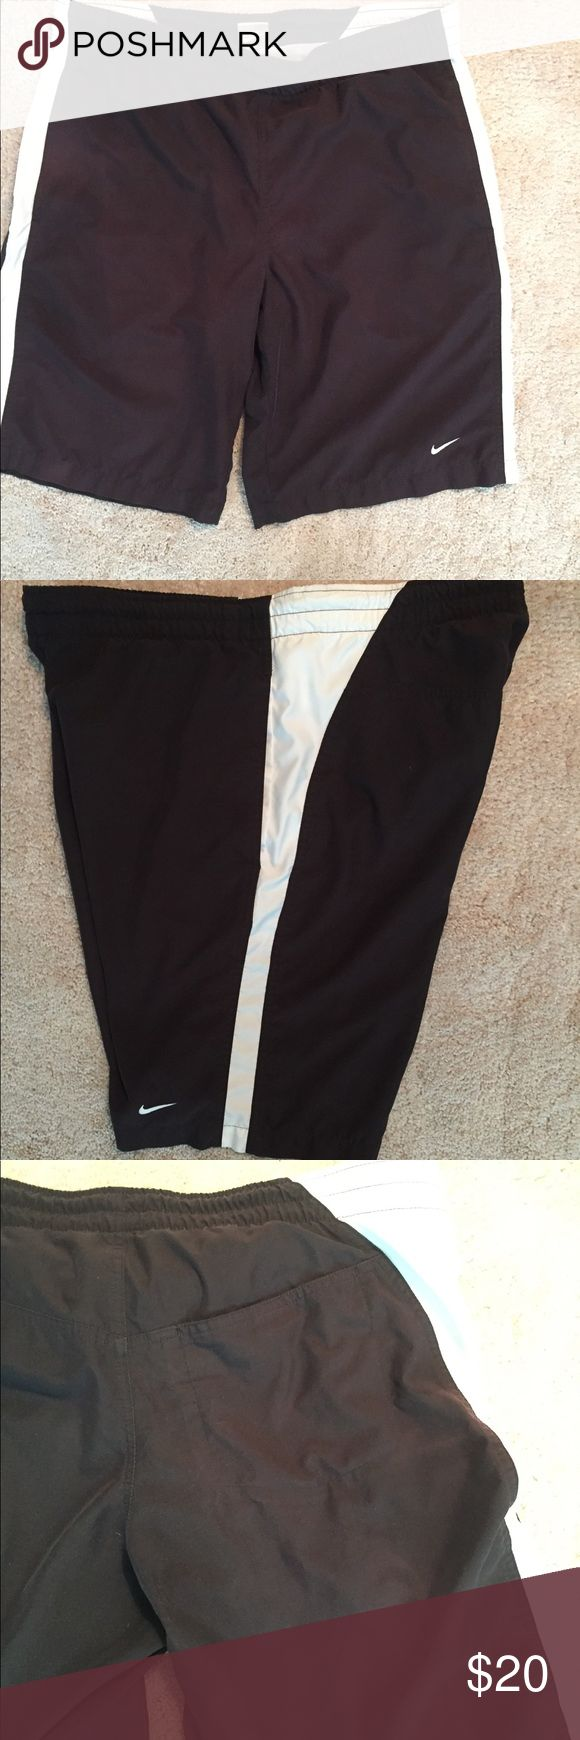 Men's Nike swim shorts I have for sale a black pair of Nike swim trunks. The shorts are size medium, and have a white stripe down the sides. The shorts have netting, and a back Velcro pocket. Great shape. Drawstring still in waistband. Nike Swim Swim Trunks